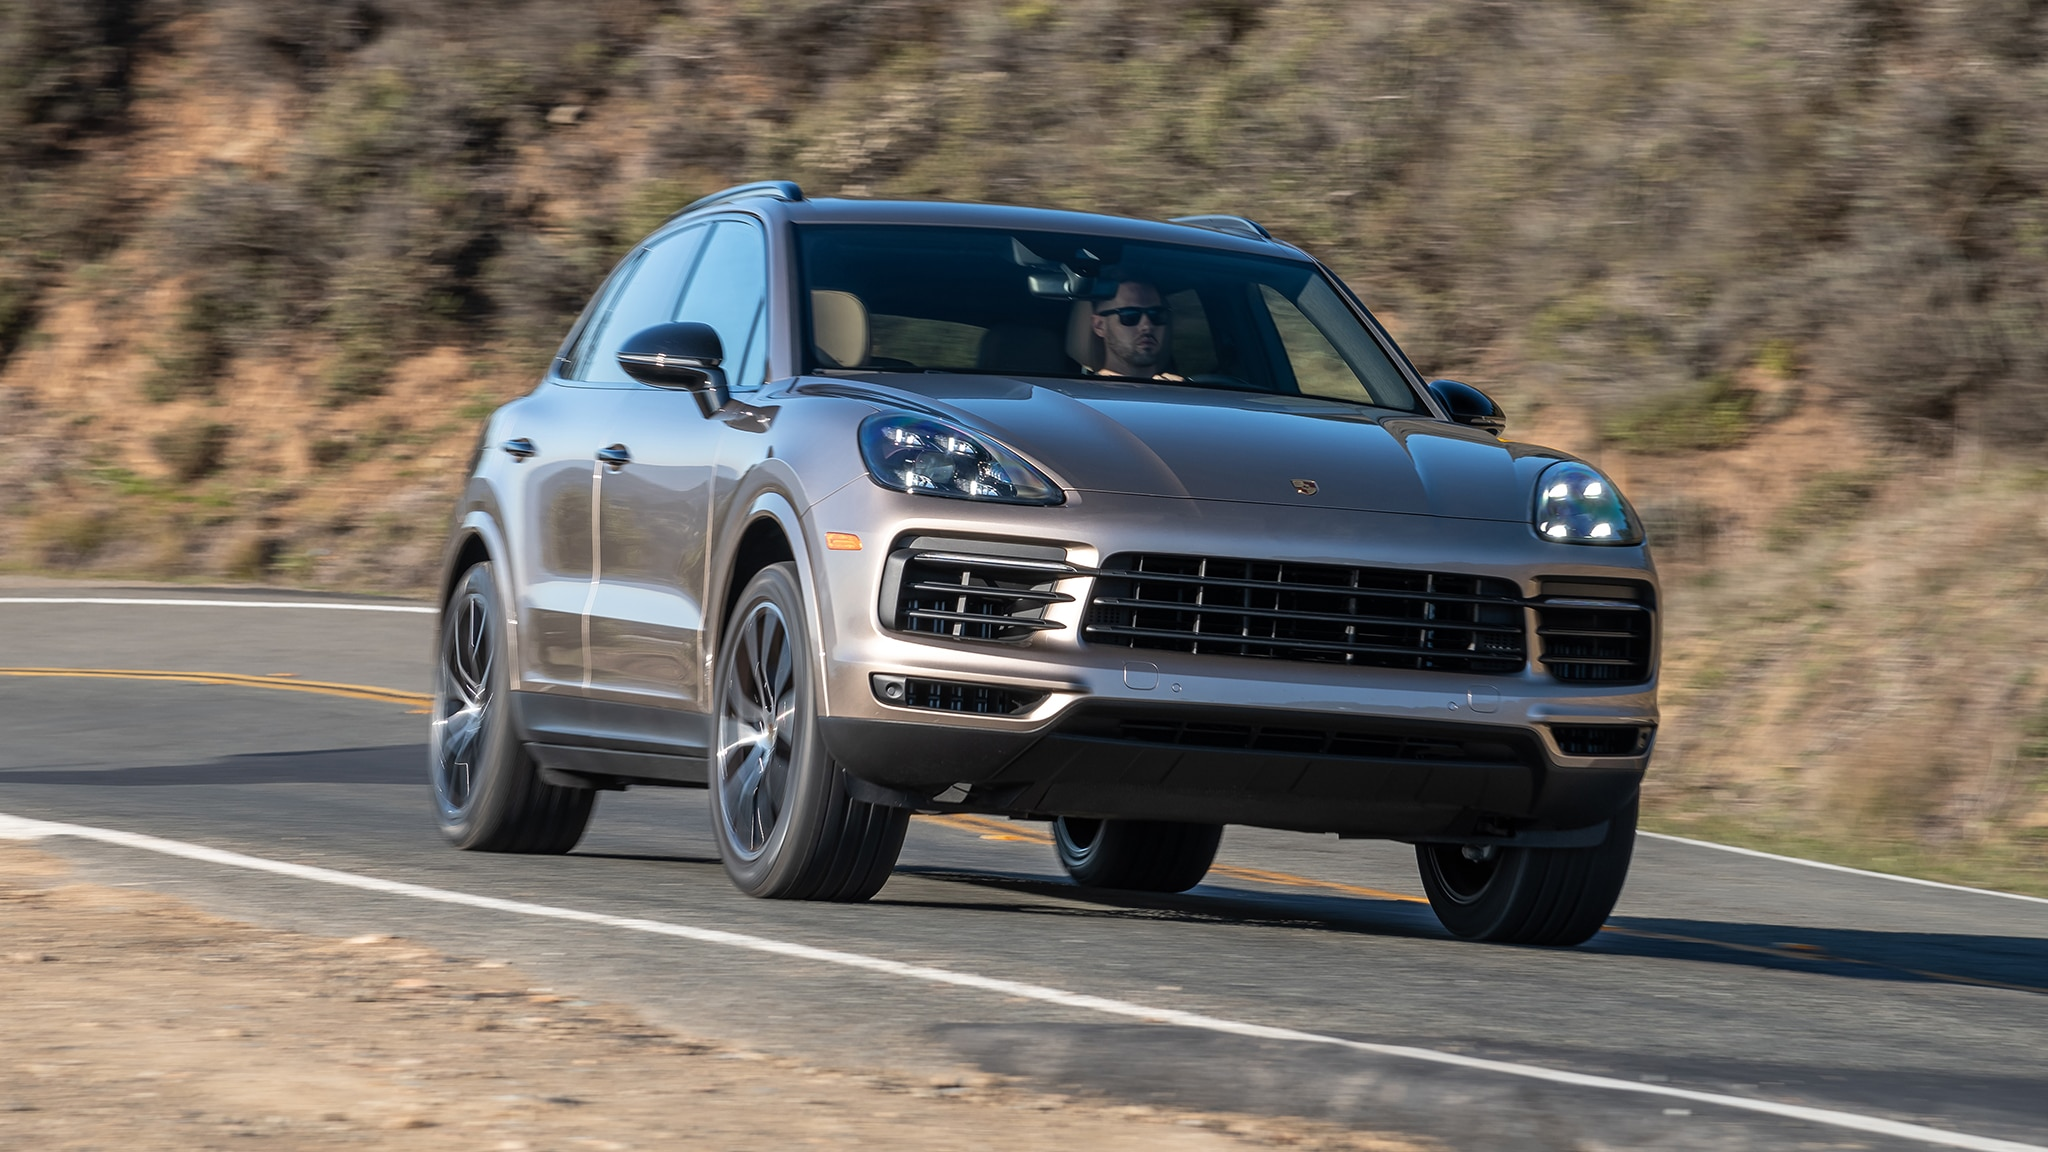 2019 Porsche Cayenne S Review: Staggeringly Well-Rounded